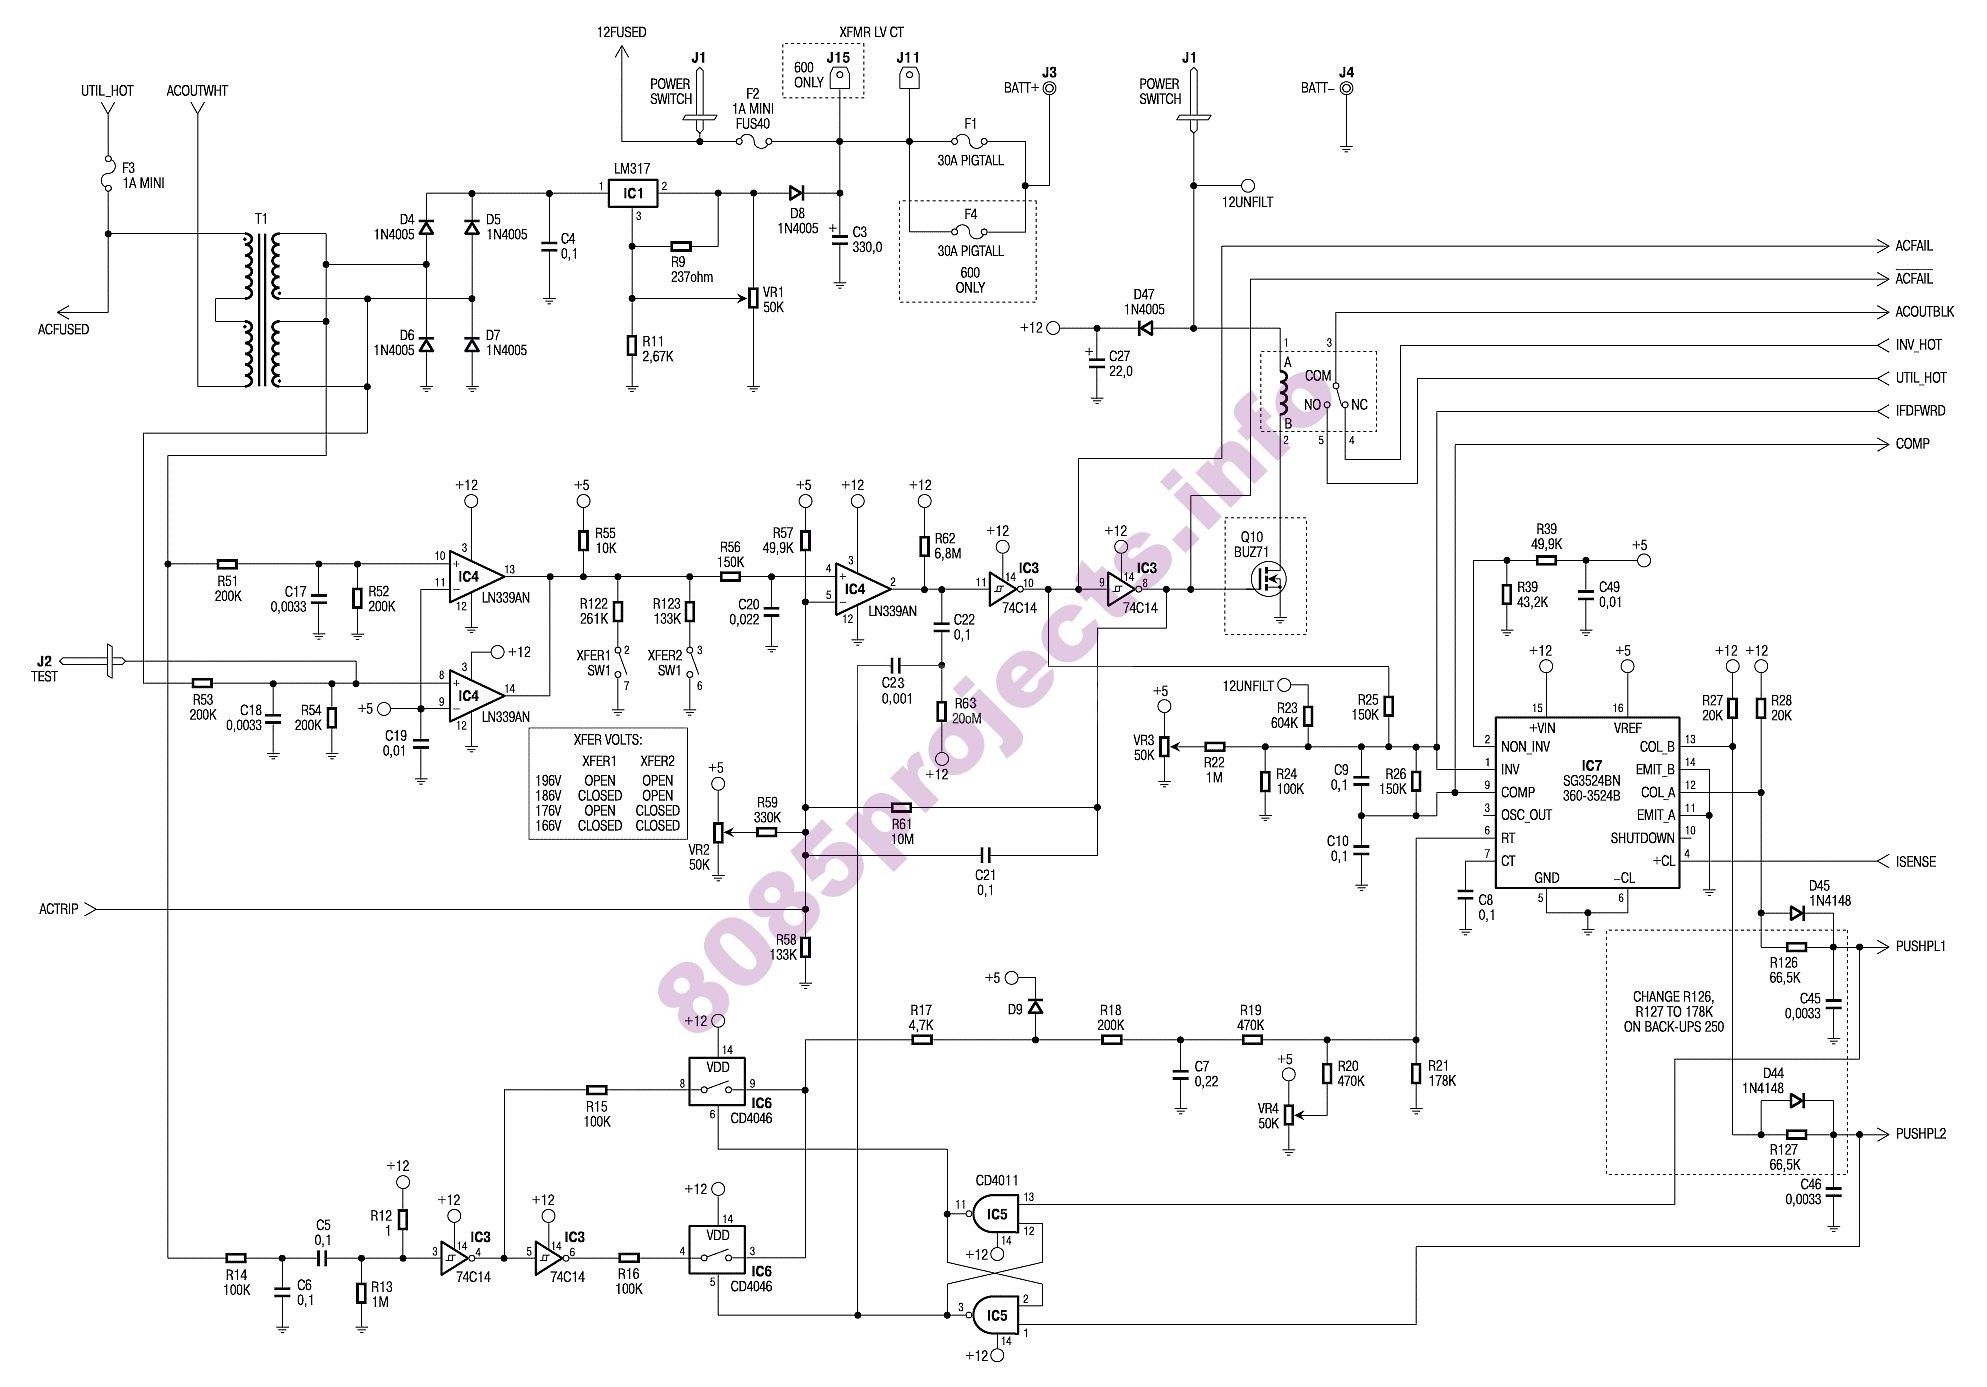 Unique Wiring Diagram Of Home Ups Diagram Diagramsample Diagramtemplate Wiringdiagram Diagramchart Worksheet Worksheettempla Diagram Circuit Diagram Ups